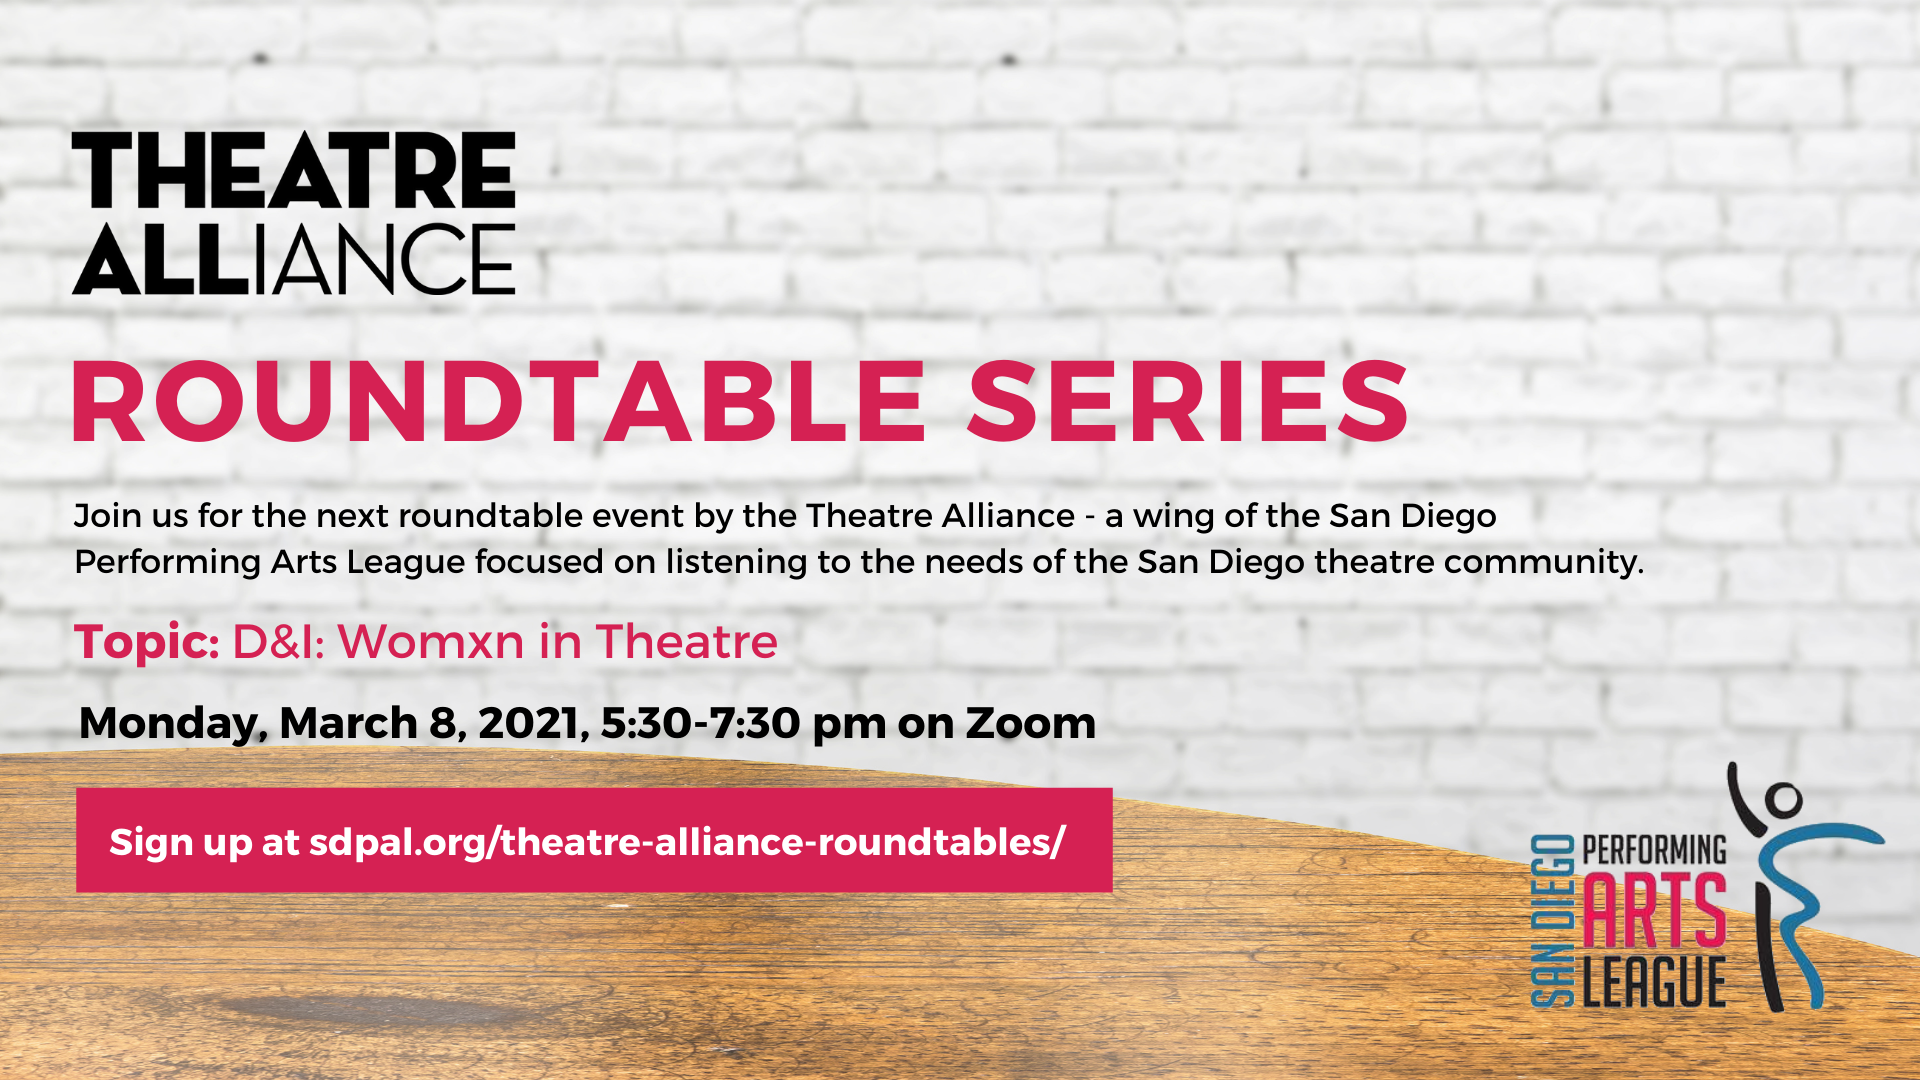 Womxn in Theatre Roundtable - March 8, 2021 5:30-7:30 on Zoom